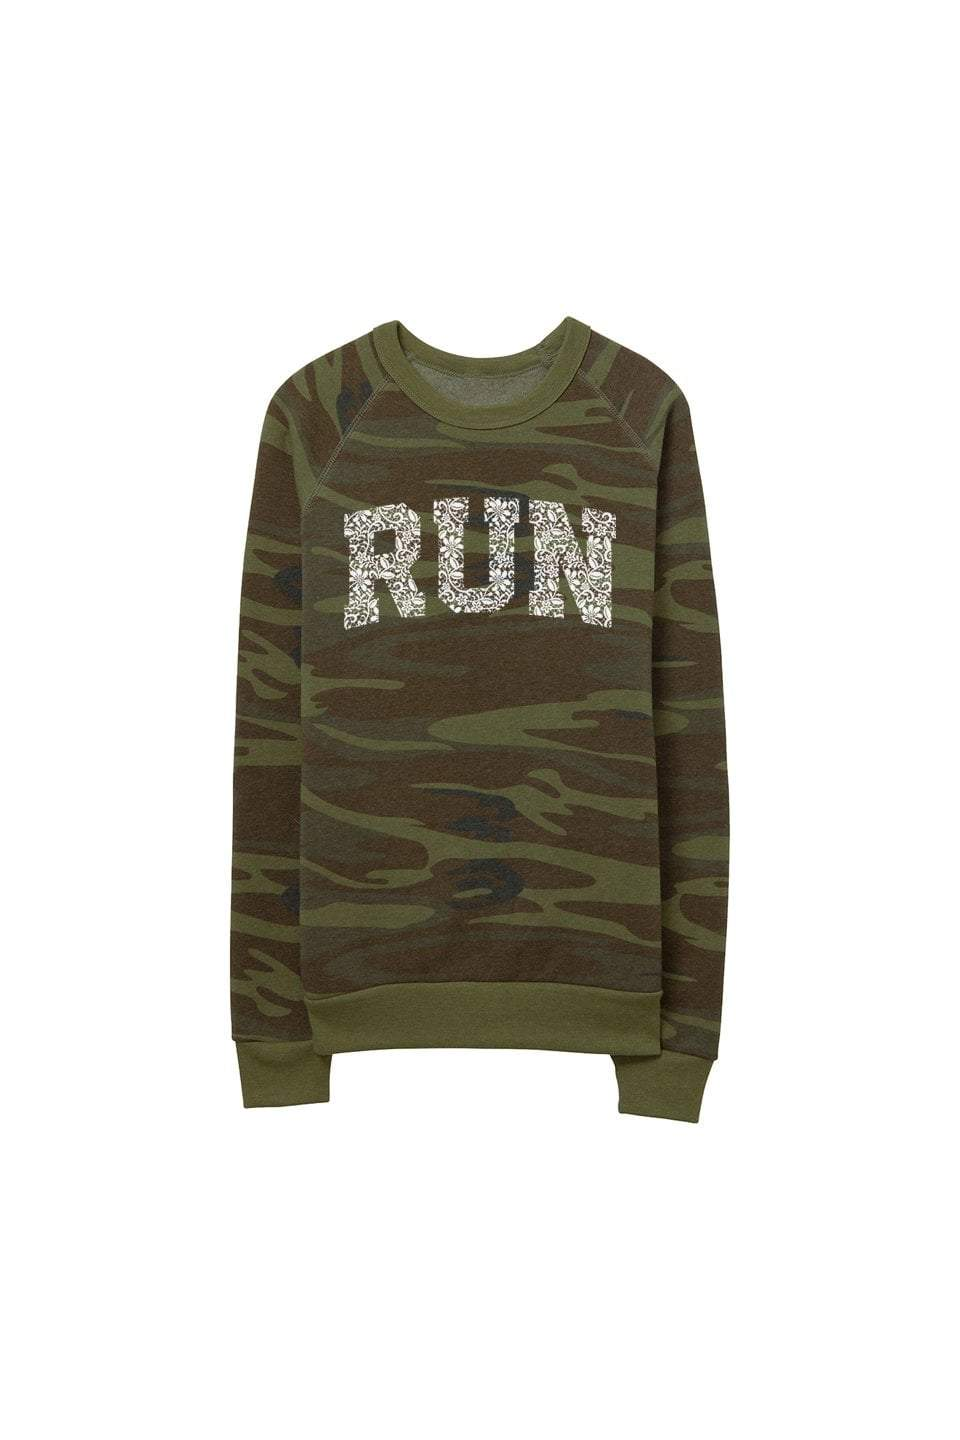 Sarah Marie Design Studio Sweatshirt RUN Lace Camo Sweatshirt